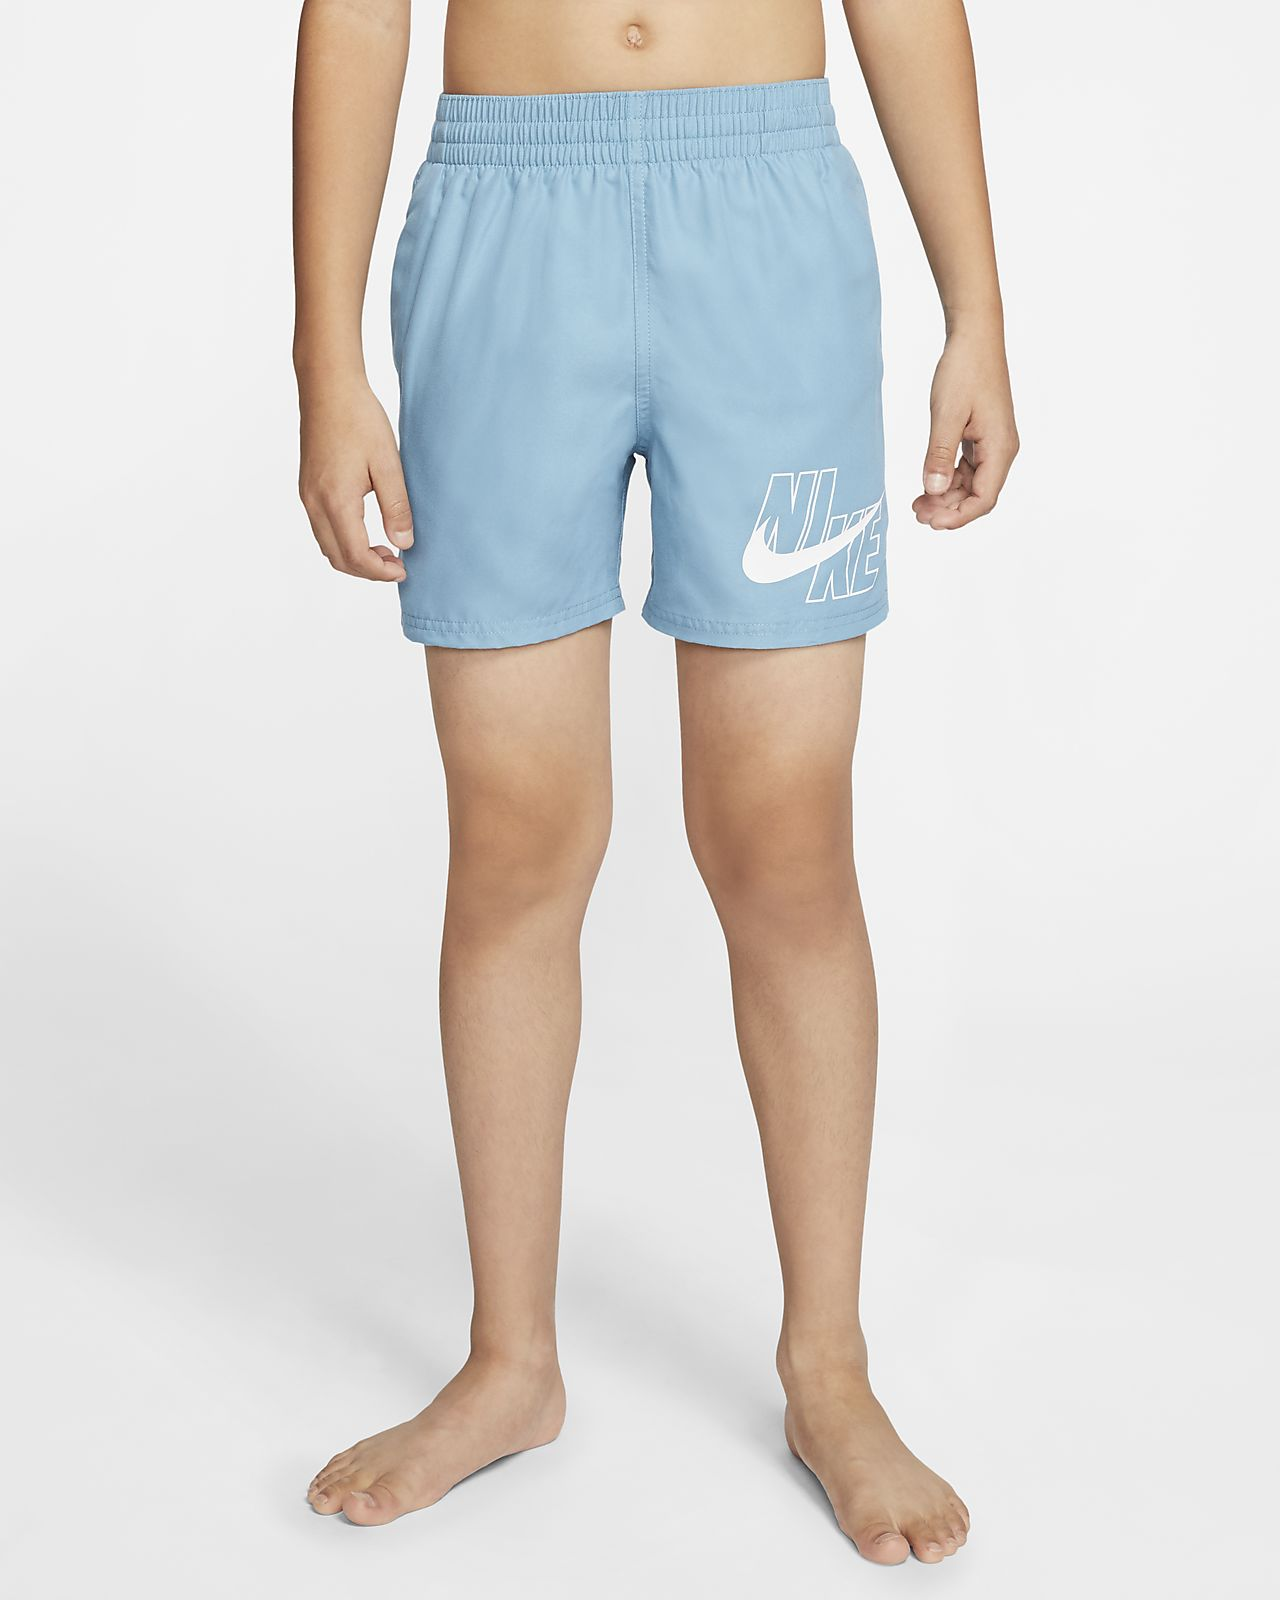 Nike Lap 4 Older Kids' (Boys') Swim Shorts